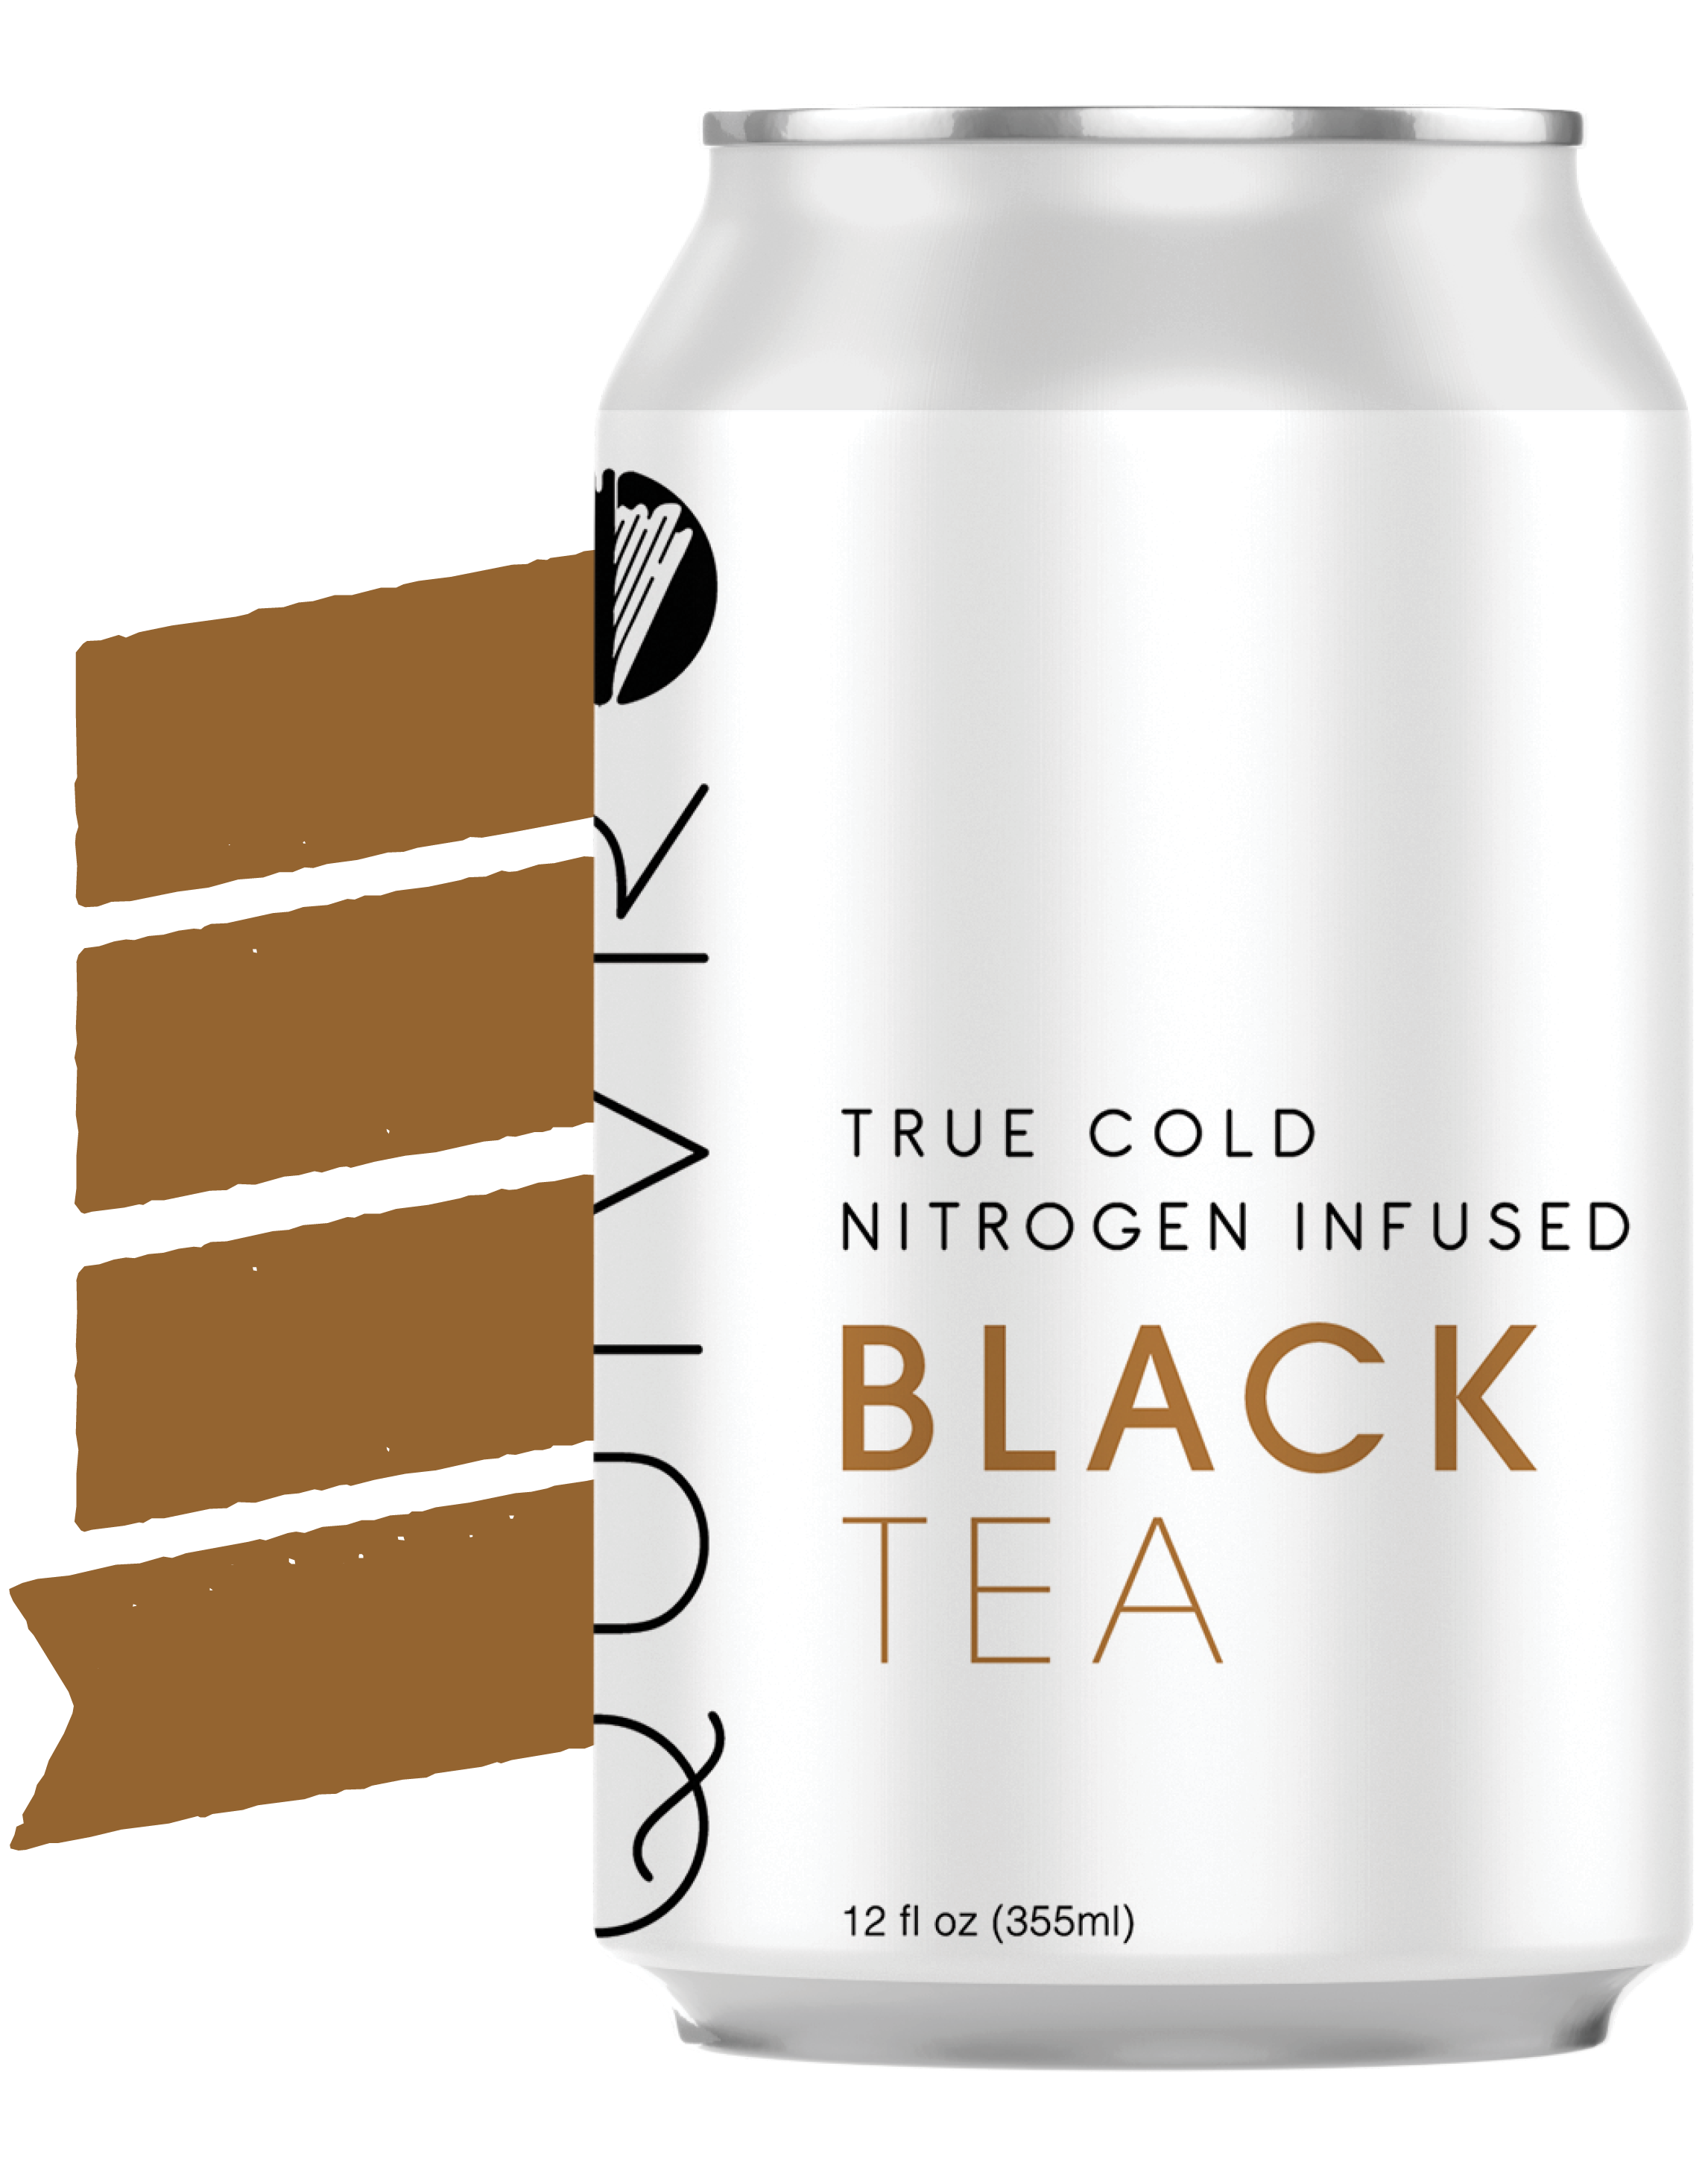 a Quivr Black Tea can in front of a banner.